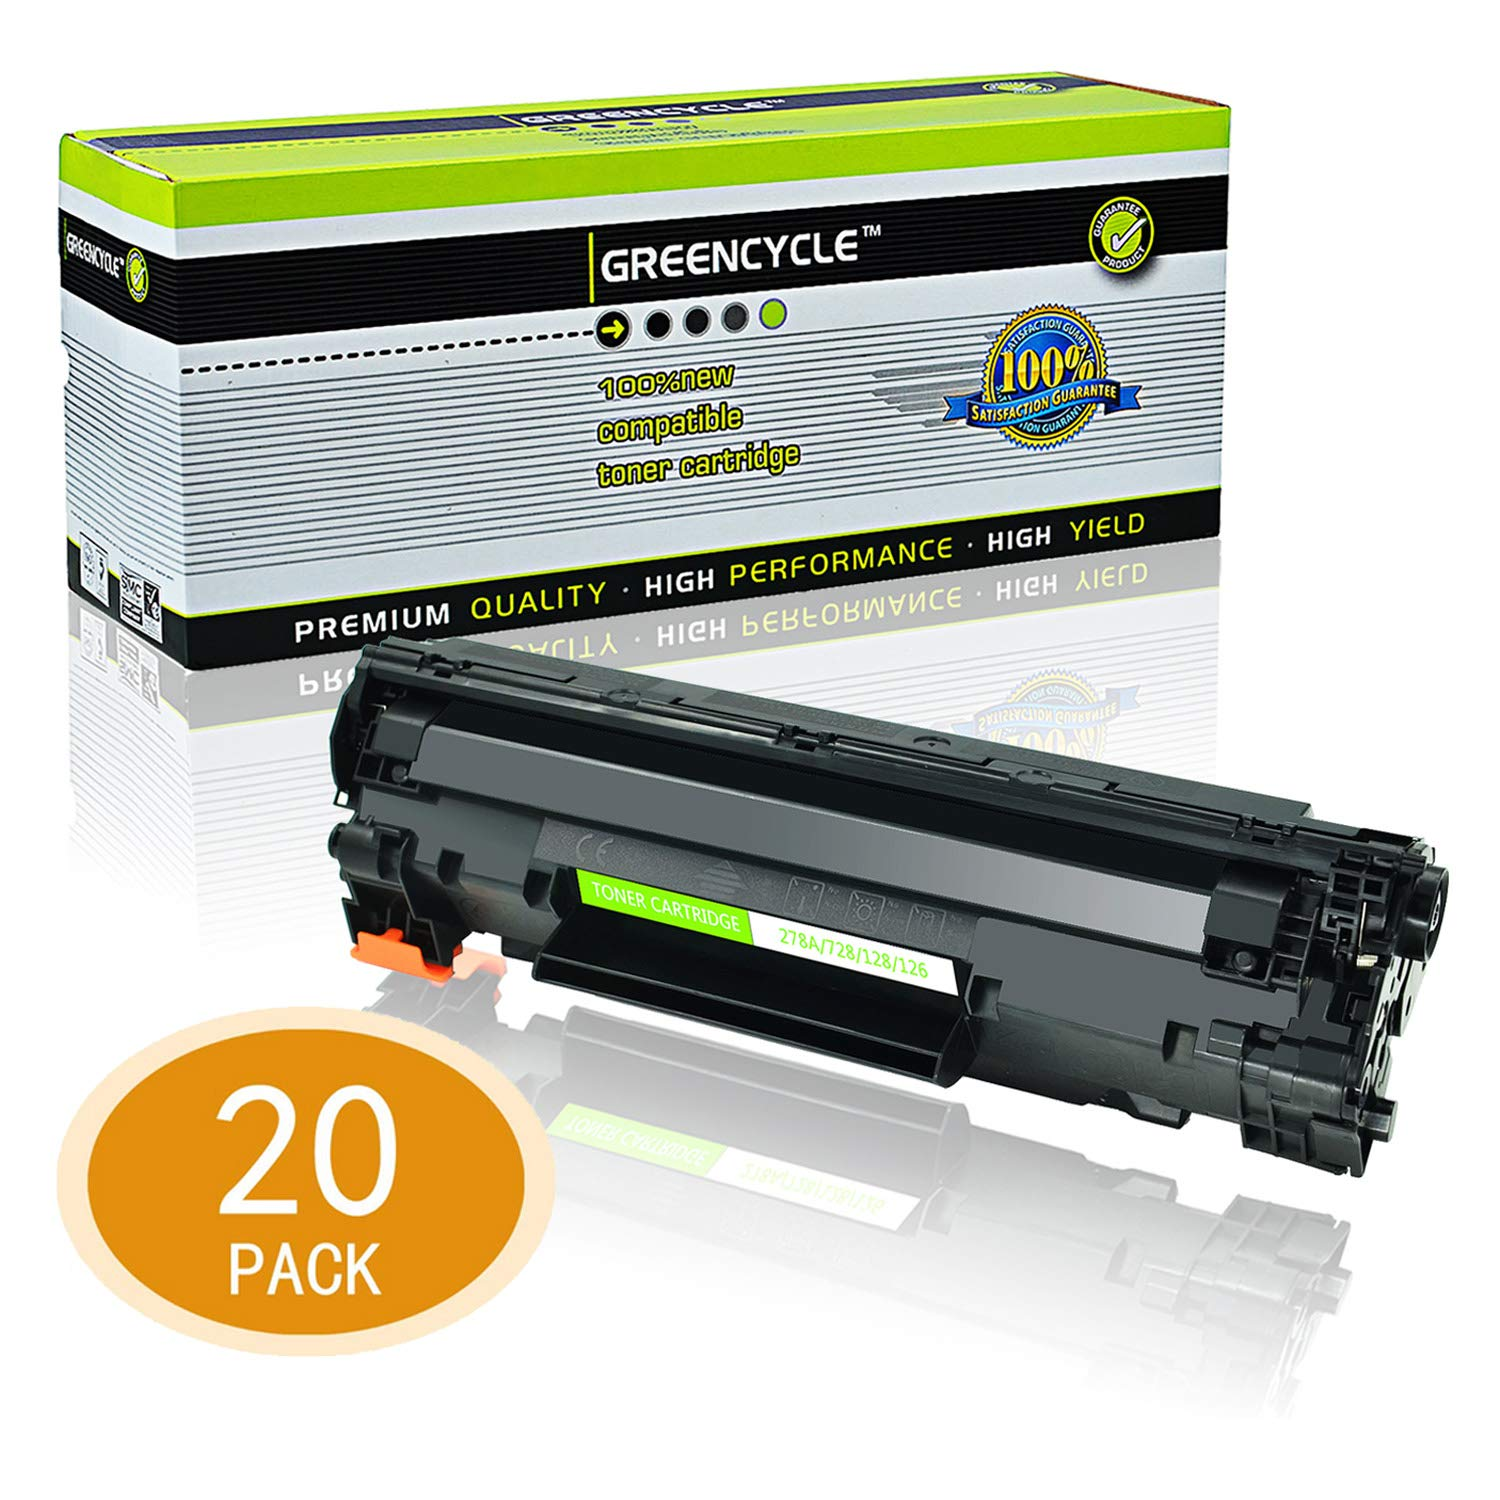 GREENCYCLE Toner Cartridge Replacement Compatible for Canon 126 CRG-126 CRG126 3483B001 use in ImageClass LBP6200d, and LBP6230dw Wireless Laser Printers (Black,20 PK)